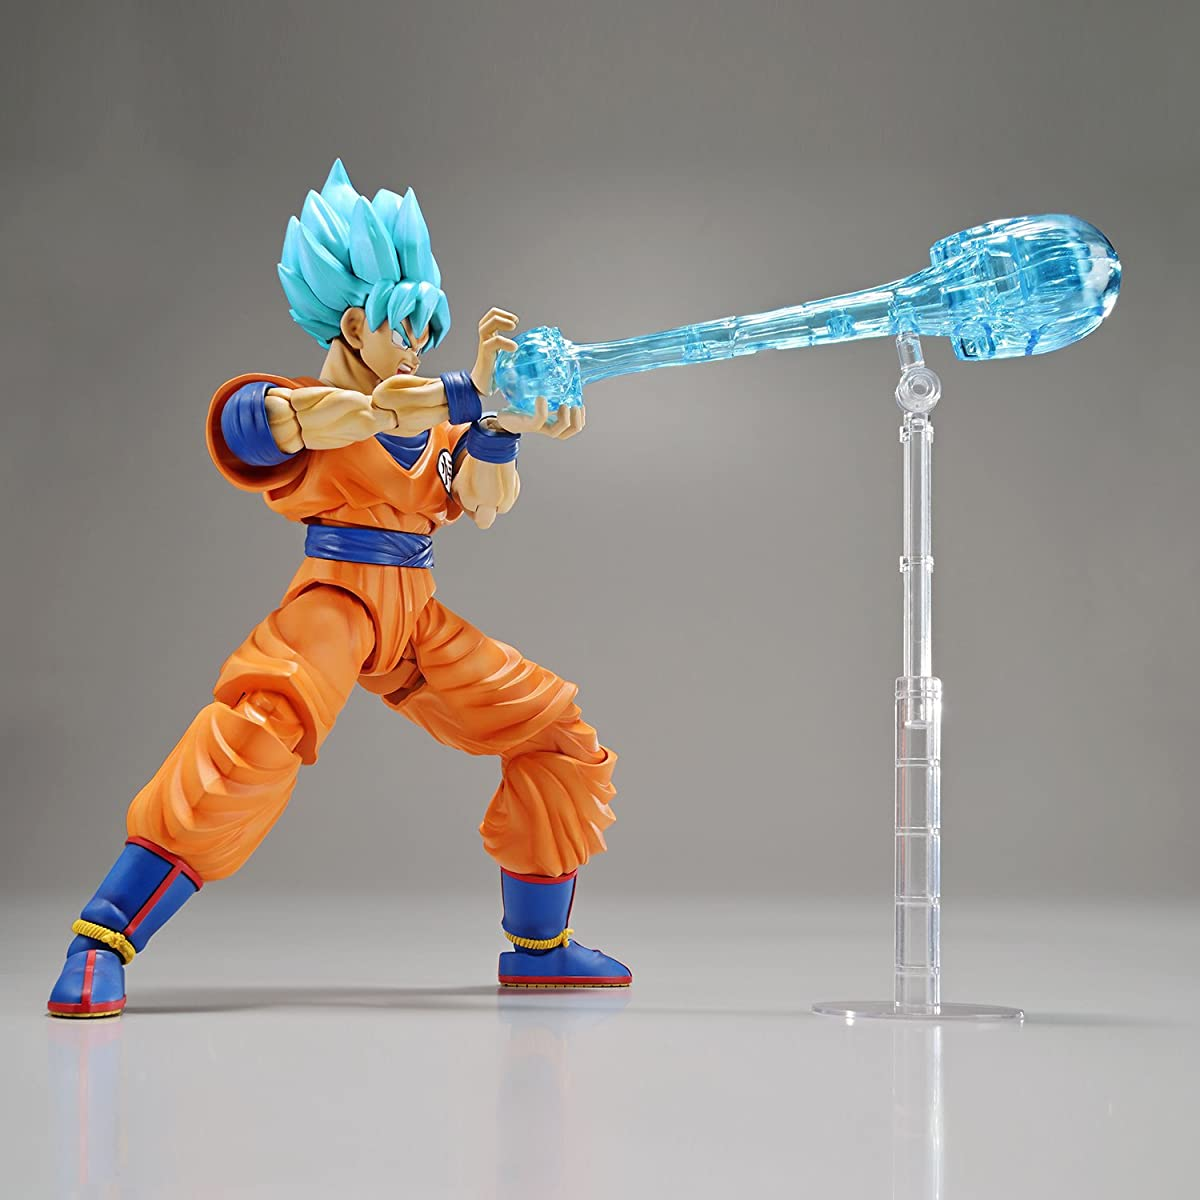 Bandai Hobby Dragon Ball Super: Super Saiyan God Super Saiyan Son Goku Figure-Rise Plastic Model Kit